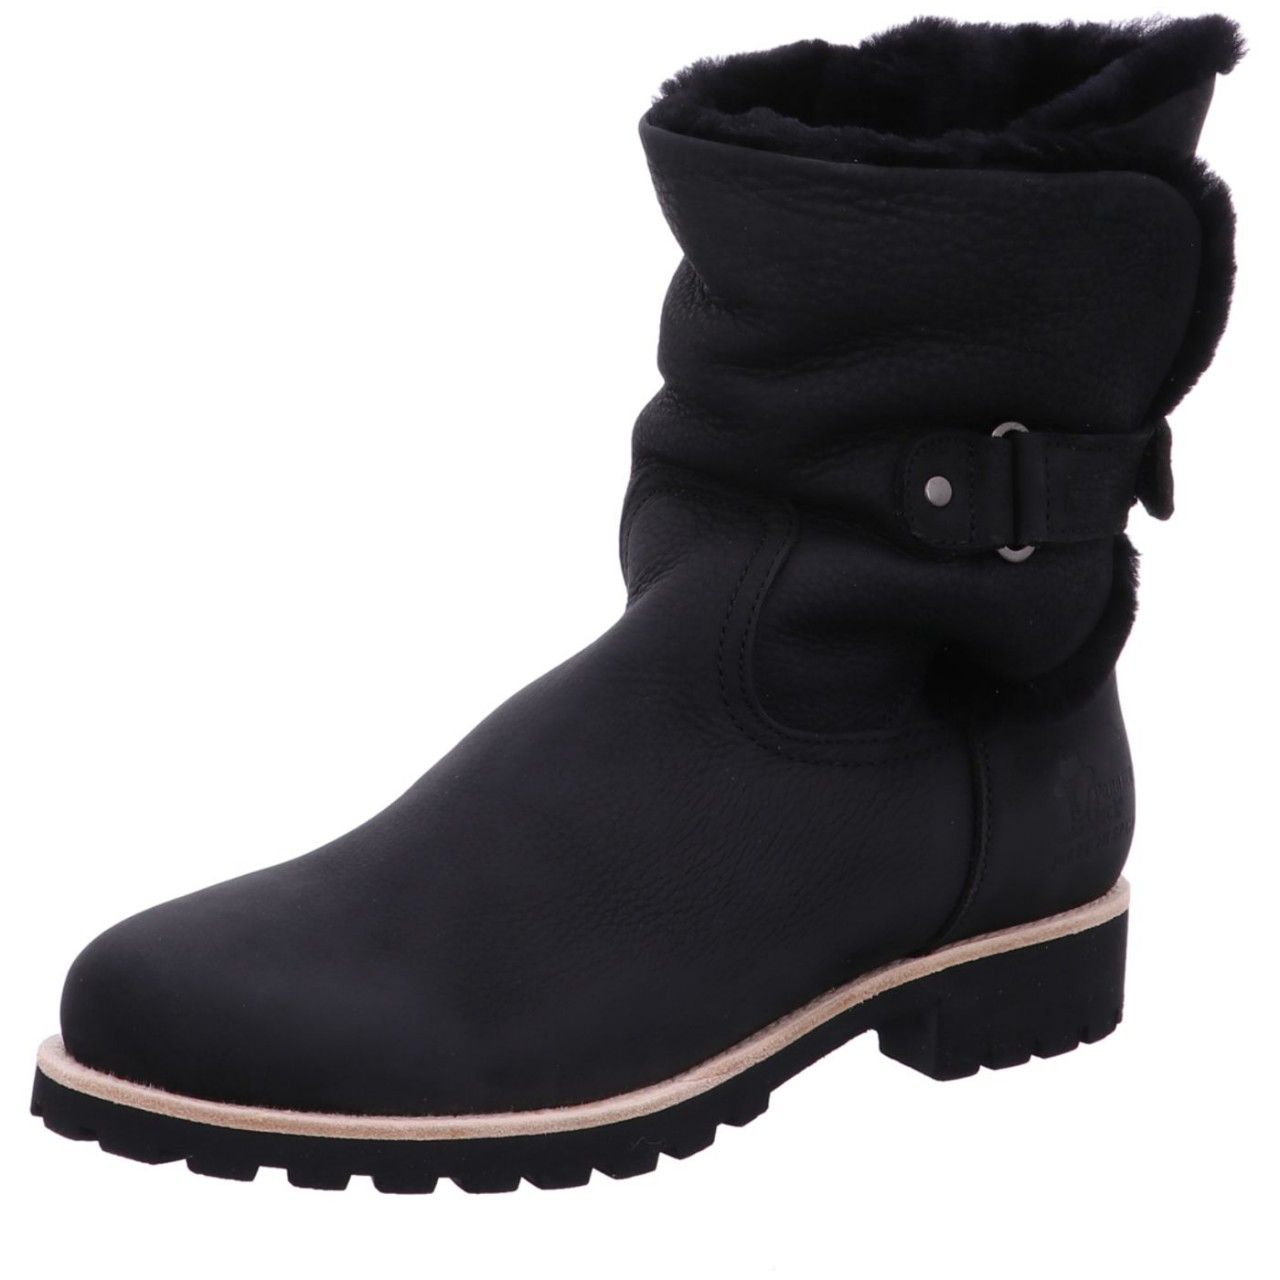 Panama Jack Boot Felia Igloo B16 Schwarz Felia Igloo B16 black